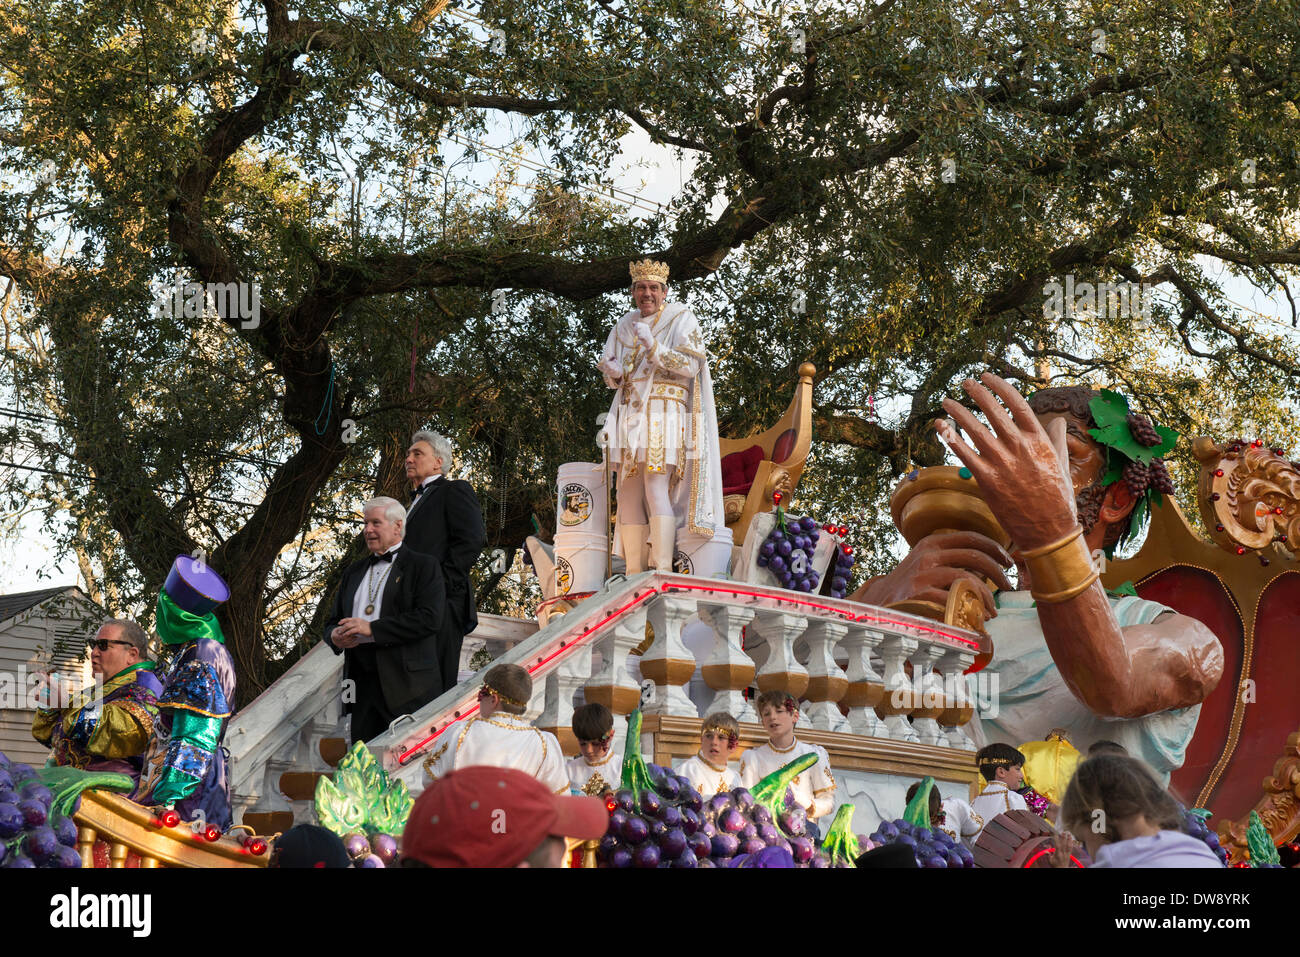 New Orleans, Louisiana, 2 March, 2014. King of Bacchus, Hugh Laurie leads the Mardi Gras Sunday parade themed, 'In Vino Veritas!' Credit:  JT Blatty/Alamy Live News - Stock Image